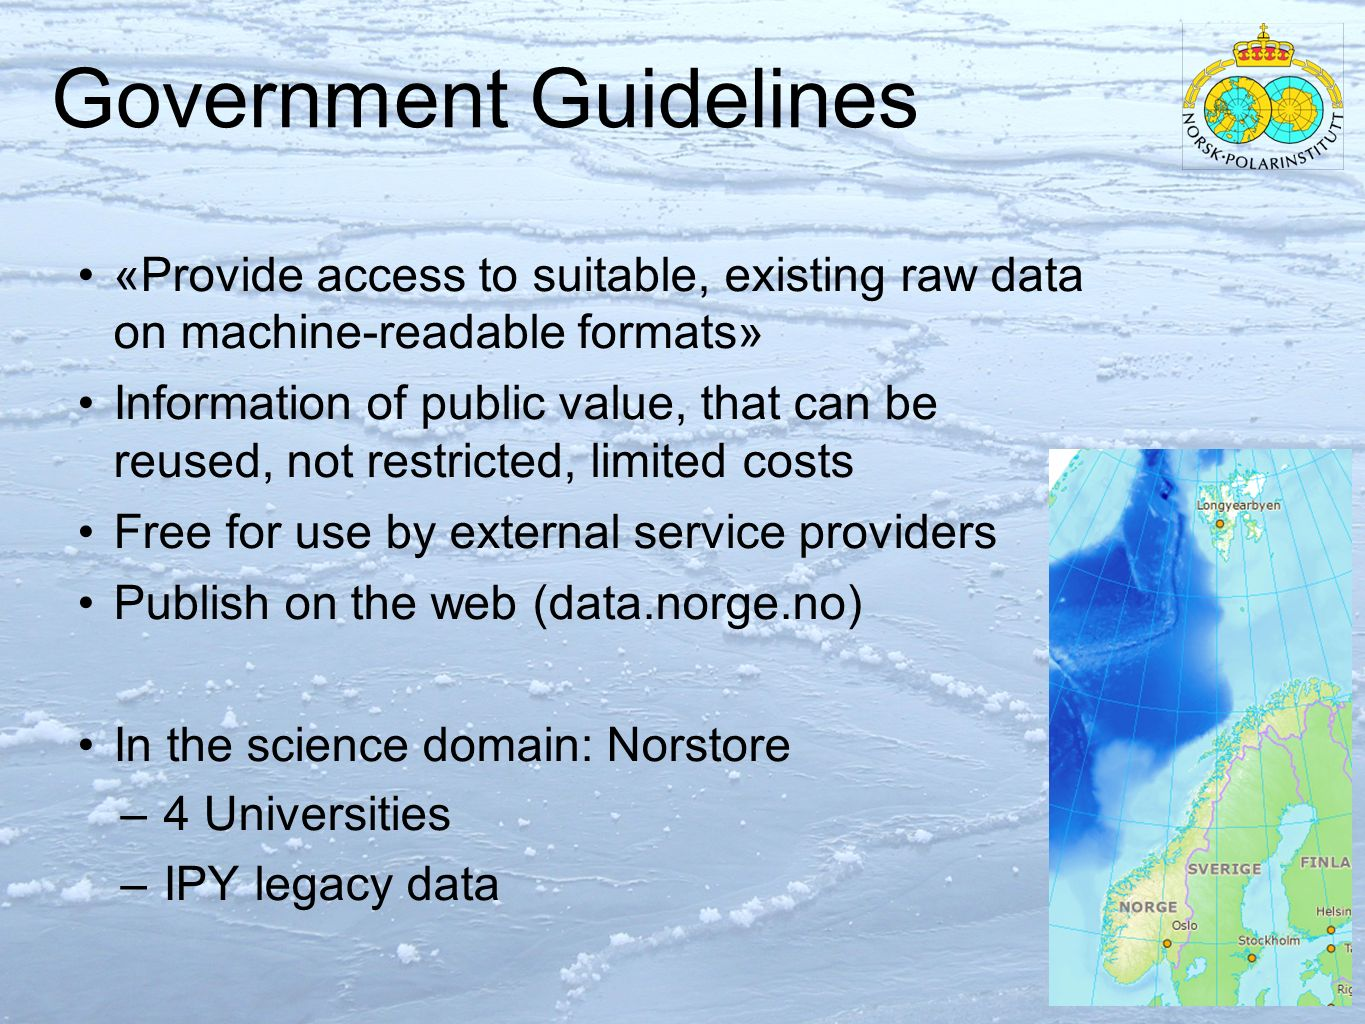 Government Guidelines «Provide access to suitable, existing raw data on machine-readable formats» Information of public value, that can be reused, not restricted, limited costs Free for use by external service providers Publish on the web (data.norge.no) In the science domain: Norstore – 4 Universities – IPY legacy data